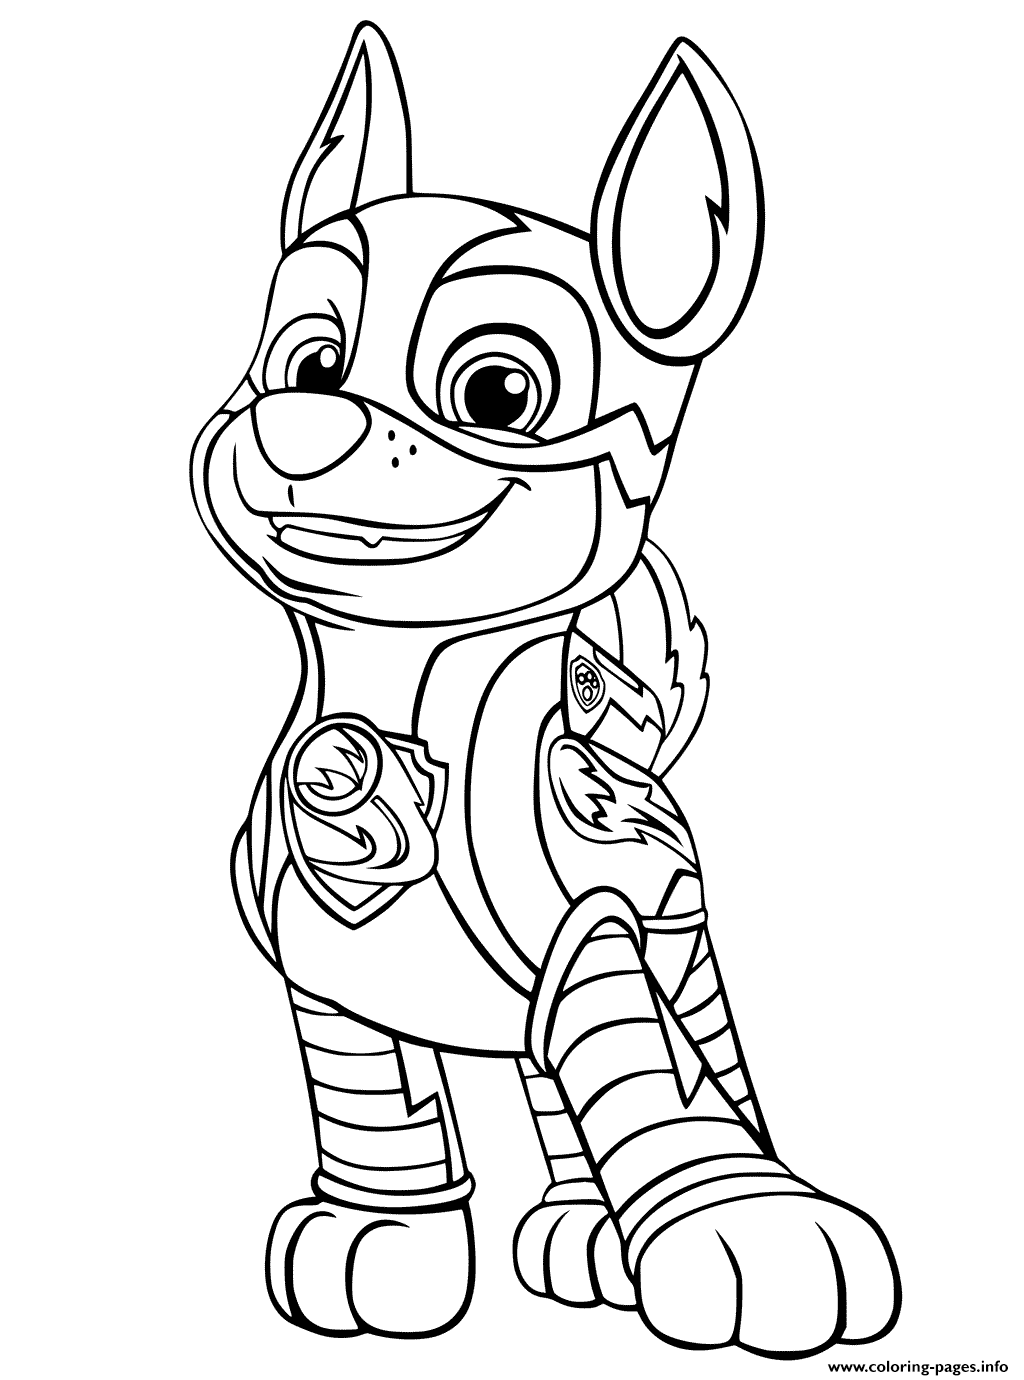 Paw Patrol Mighty Pups Chase Coloring Pages Printable